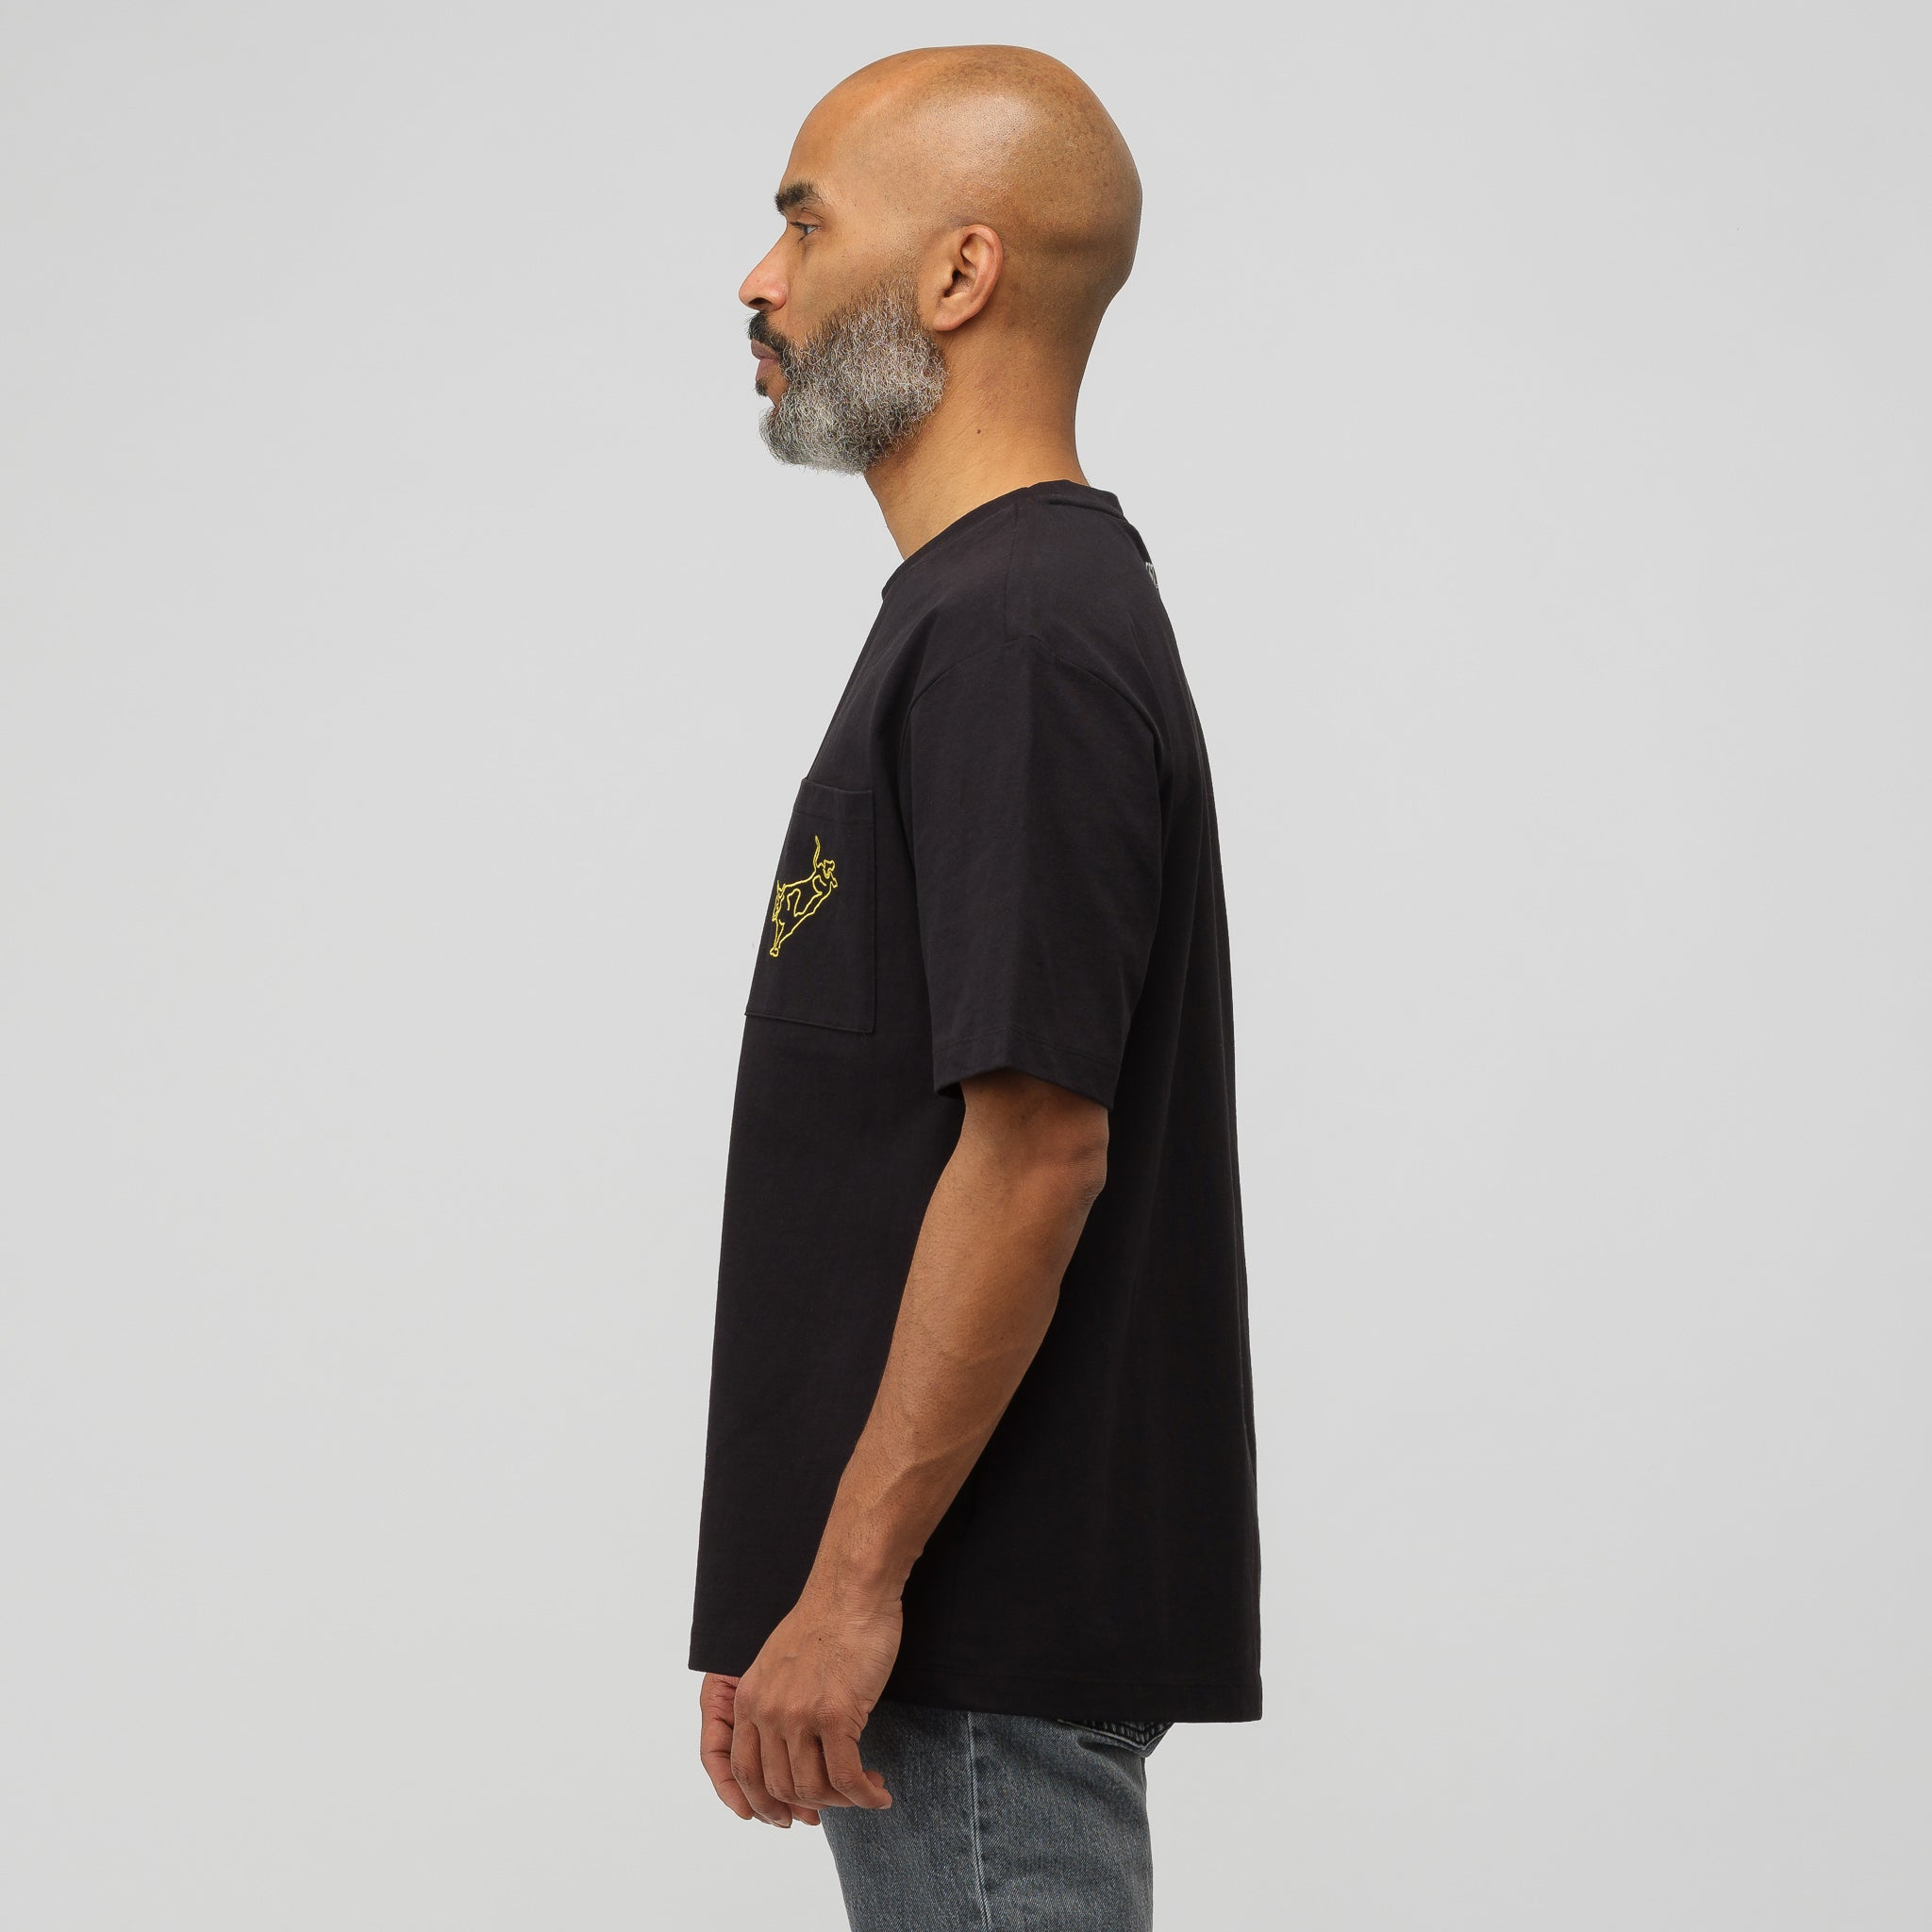 Modernist T-Shirt in Black/Yellow